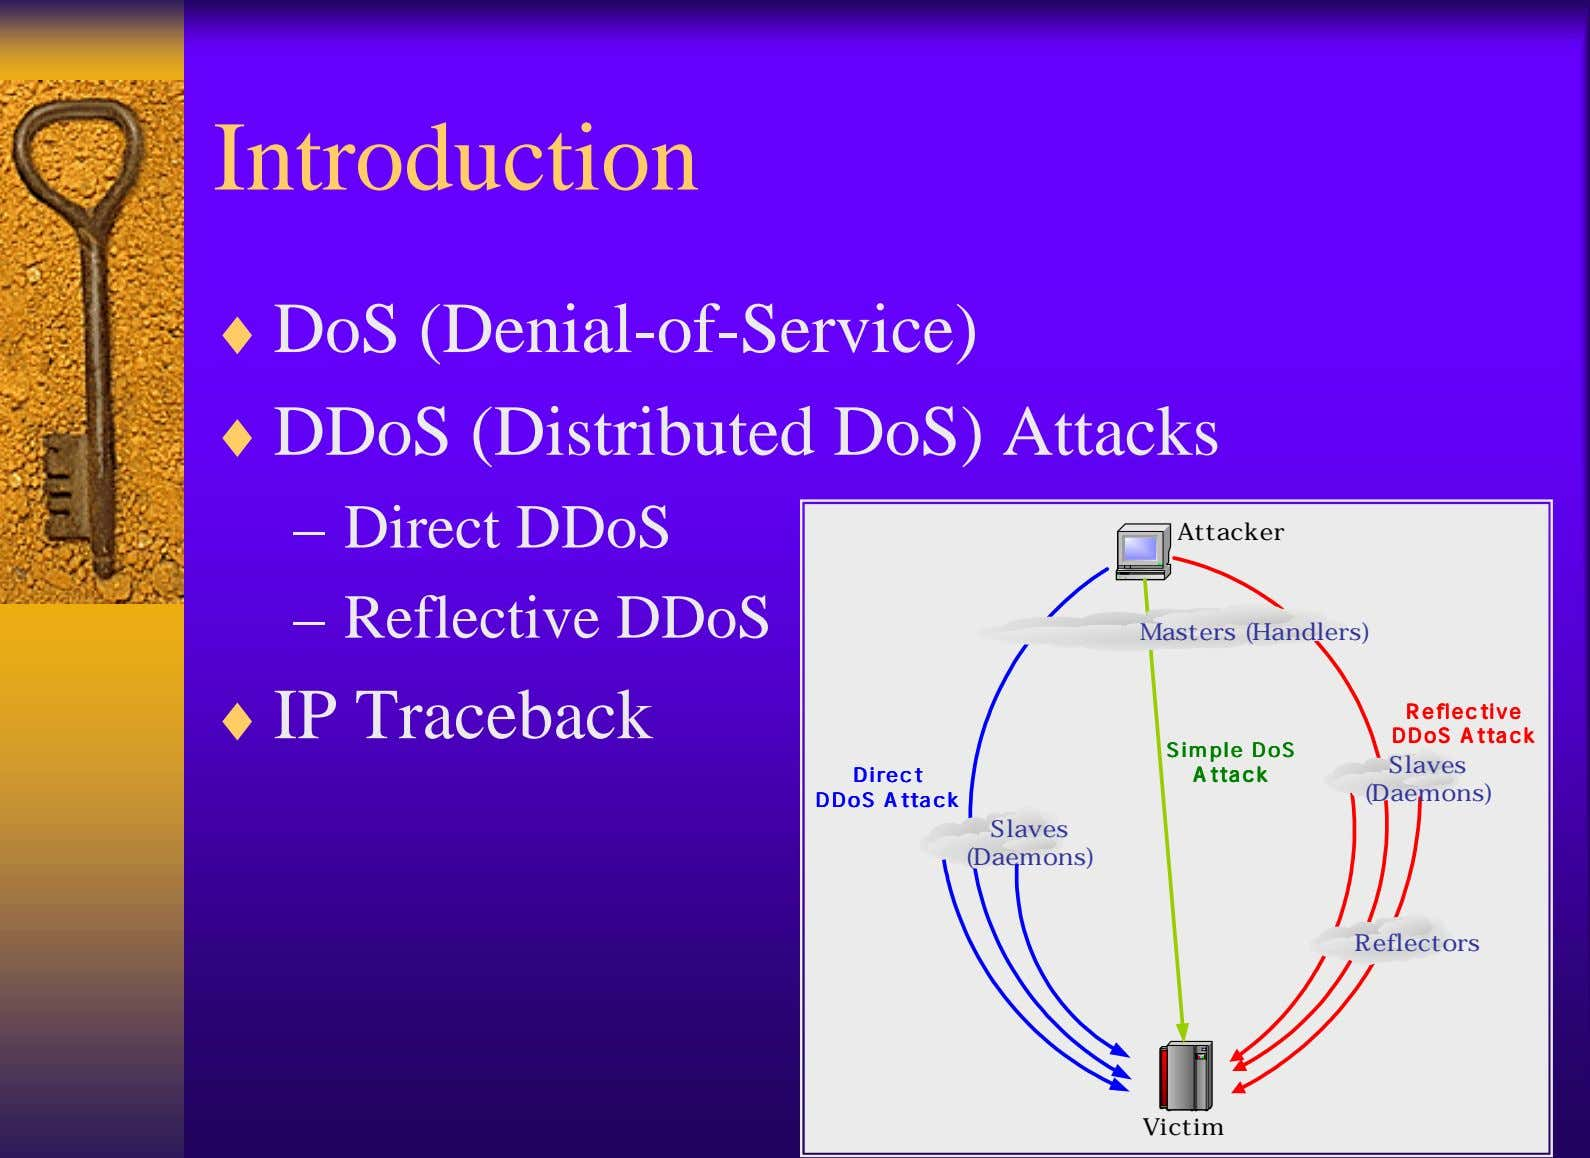 Introduction ♦ DoS (Denial-of-Service) ♦ DDoS (Distributed DoS) Attacks – Direct DDoS Attacker – Reflective